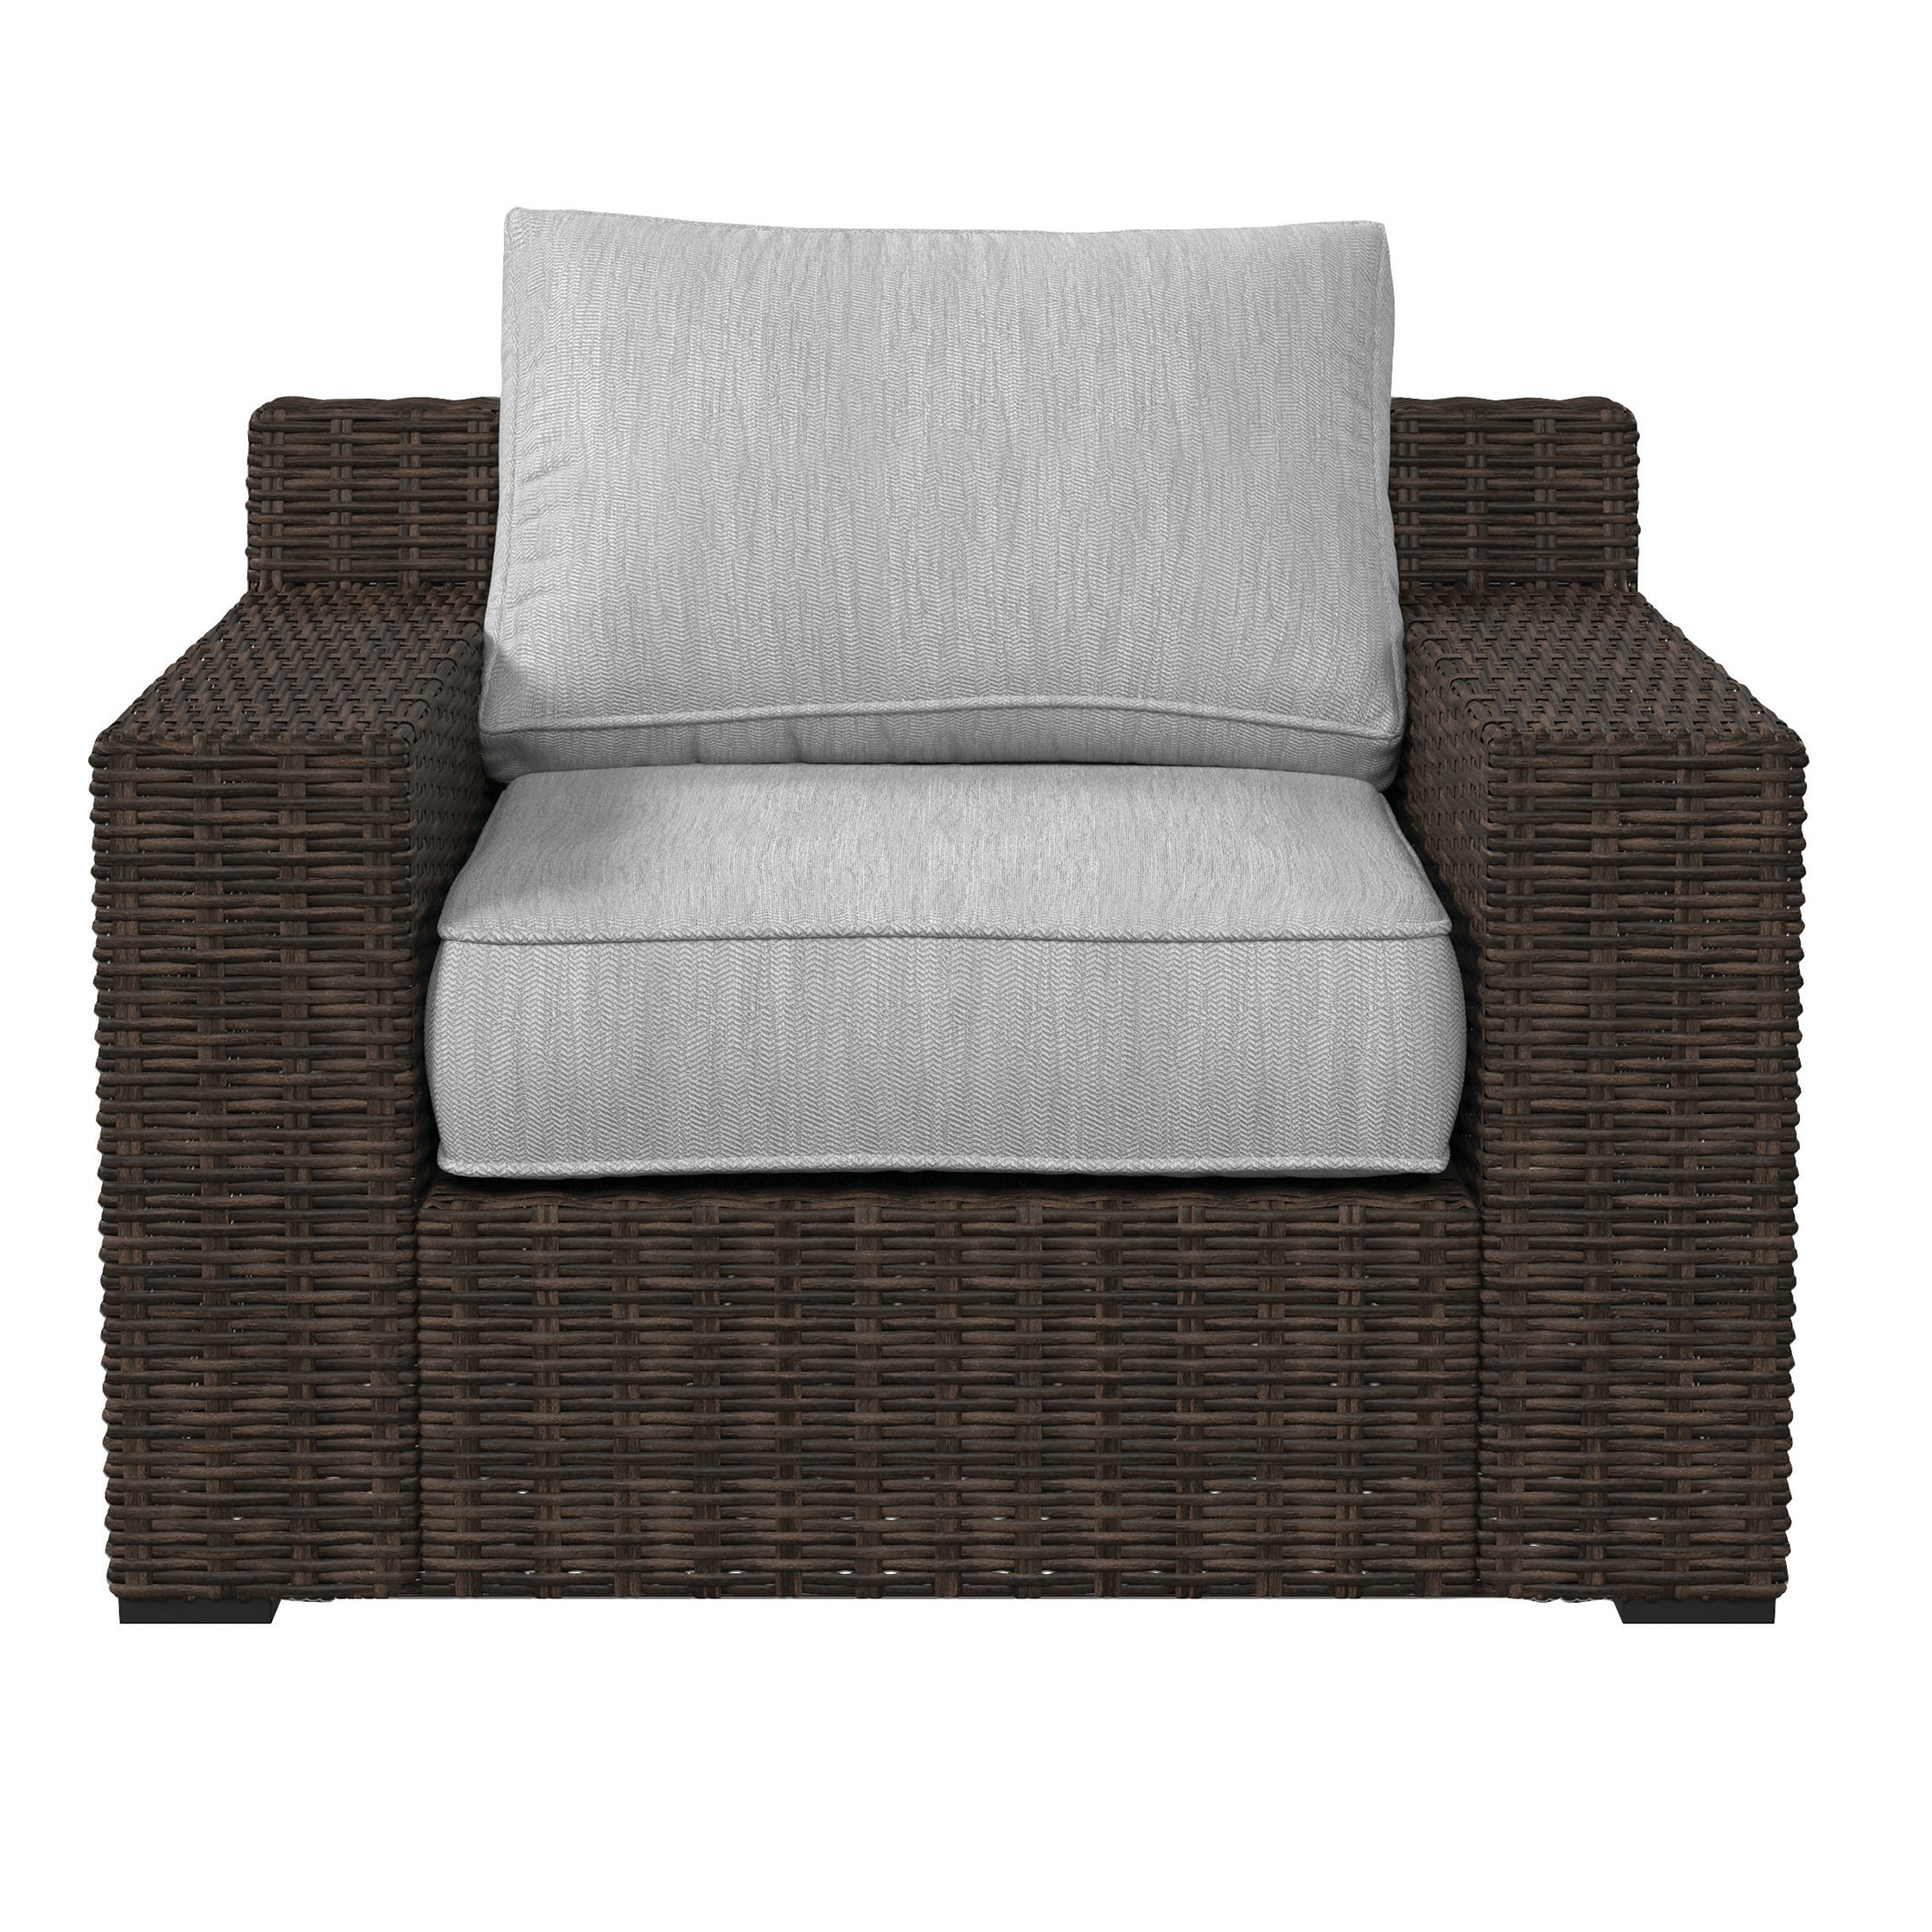 Oreland Patio Chair With Cushions Throughout Widely Used Oreland Patio Sofas With Cushions (View 7 of 20)